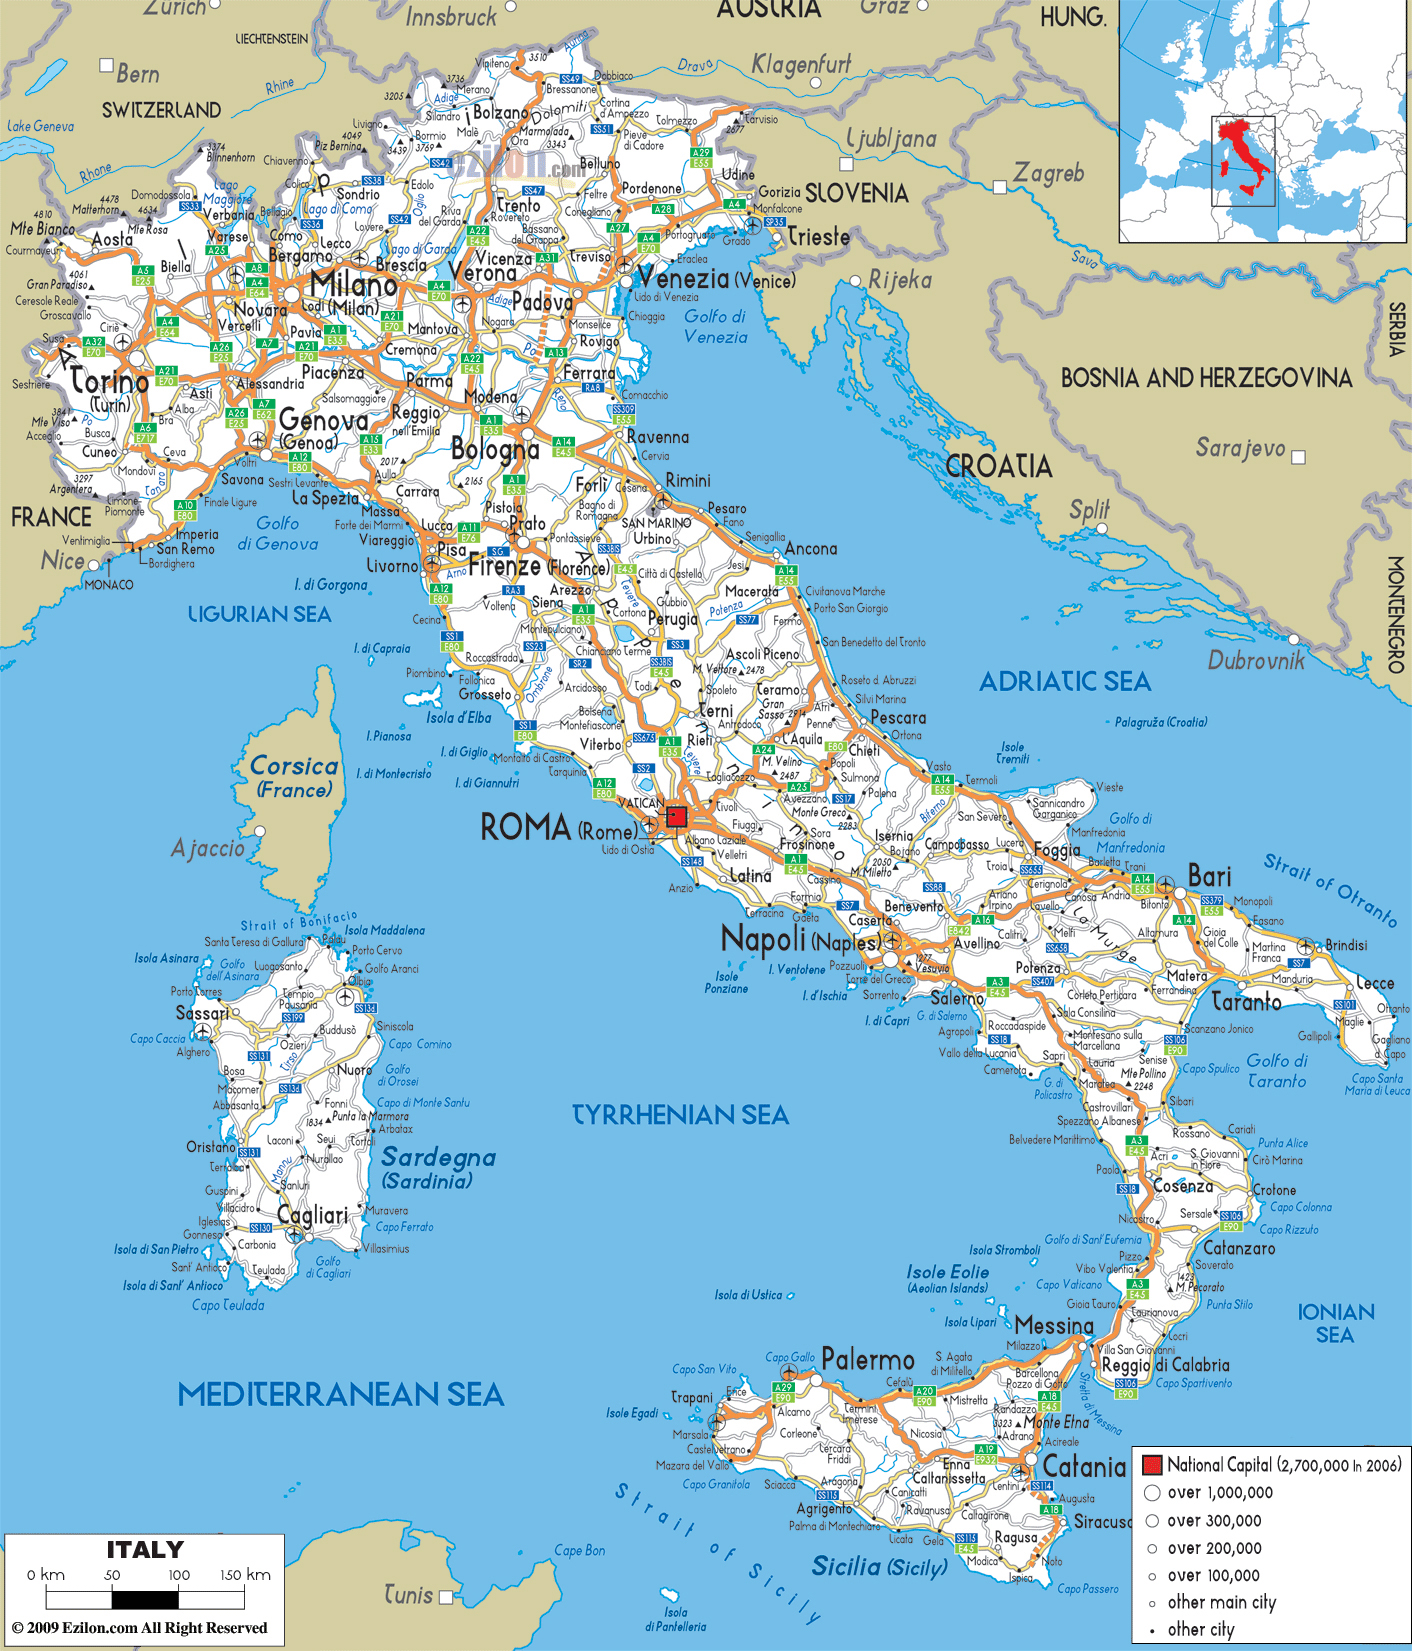 Map Of Cities Italy.Large Detailed Road Map Of Italy With All Cities And Airports